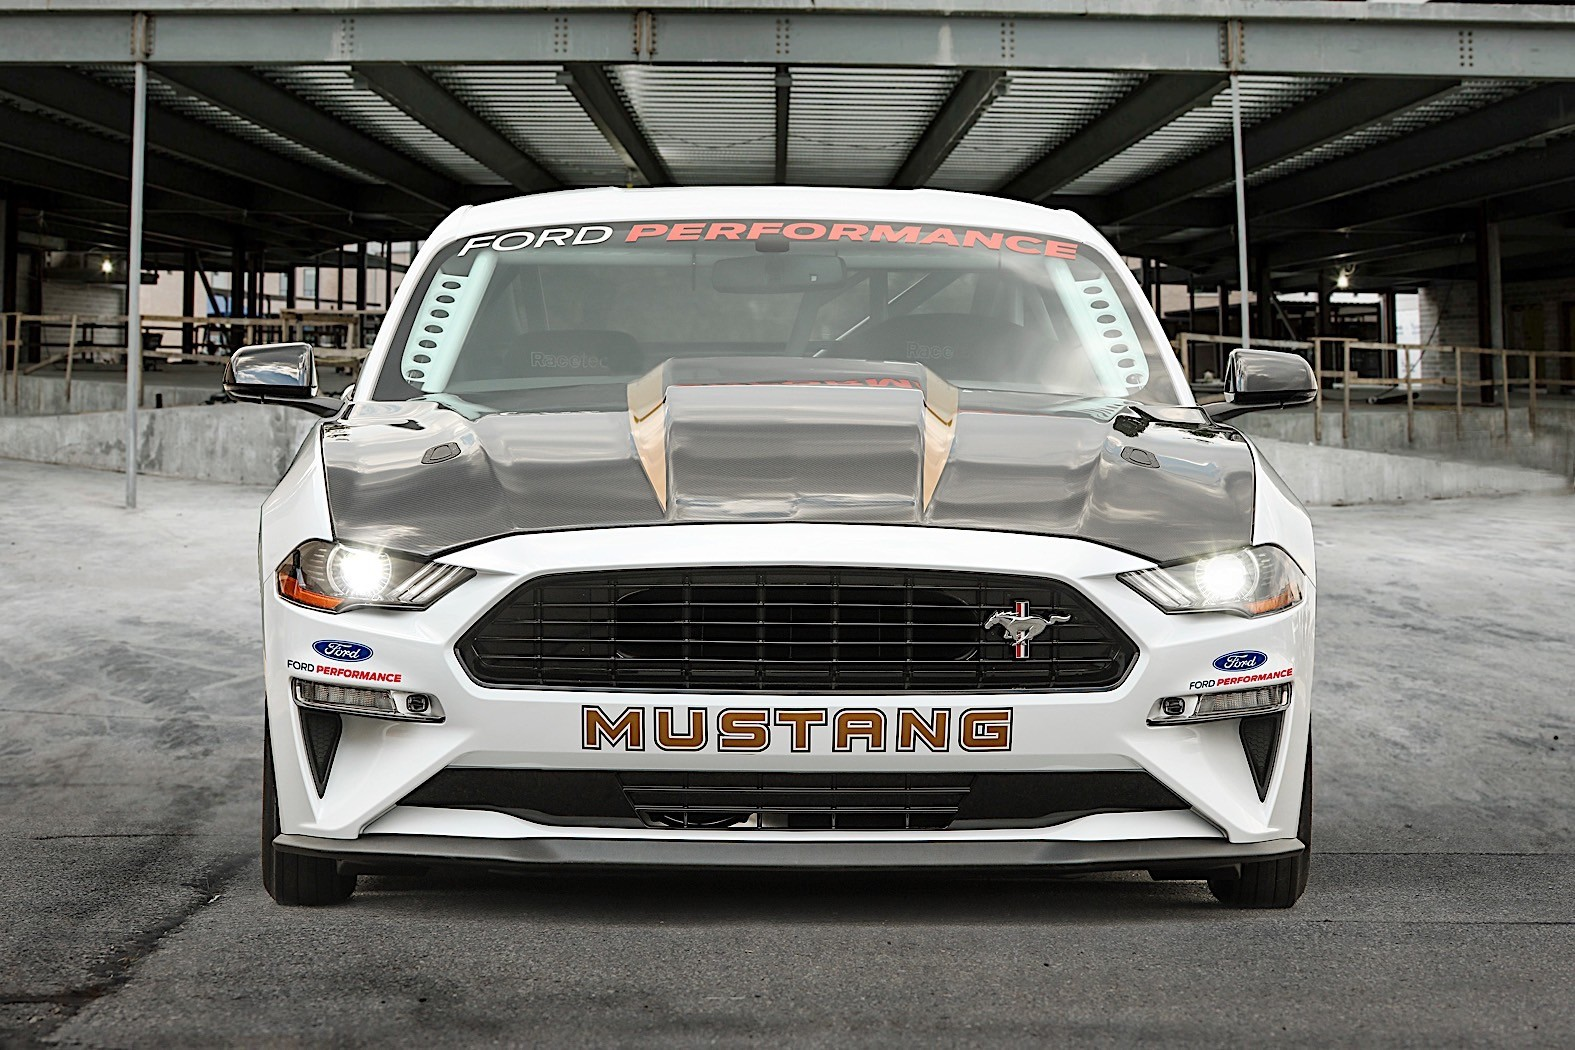 Ford Mustang Cobra Jet Takes Drag Racing to a Whole New ...